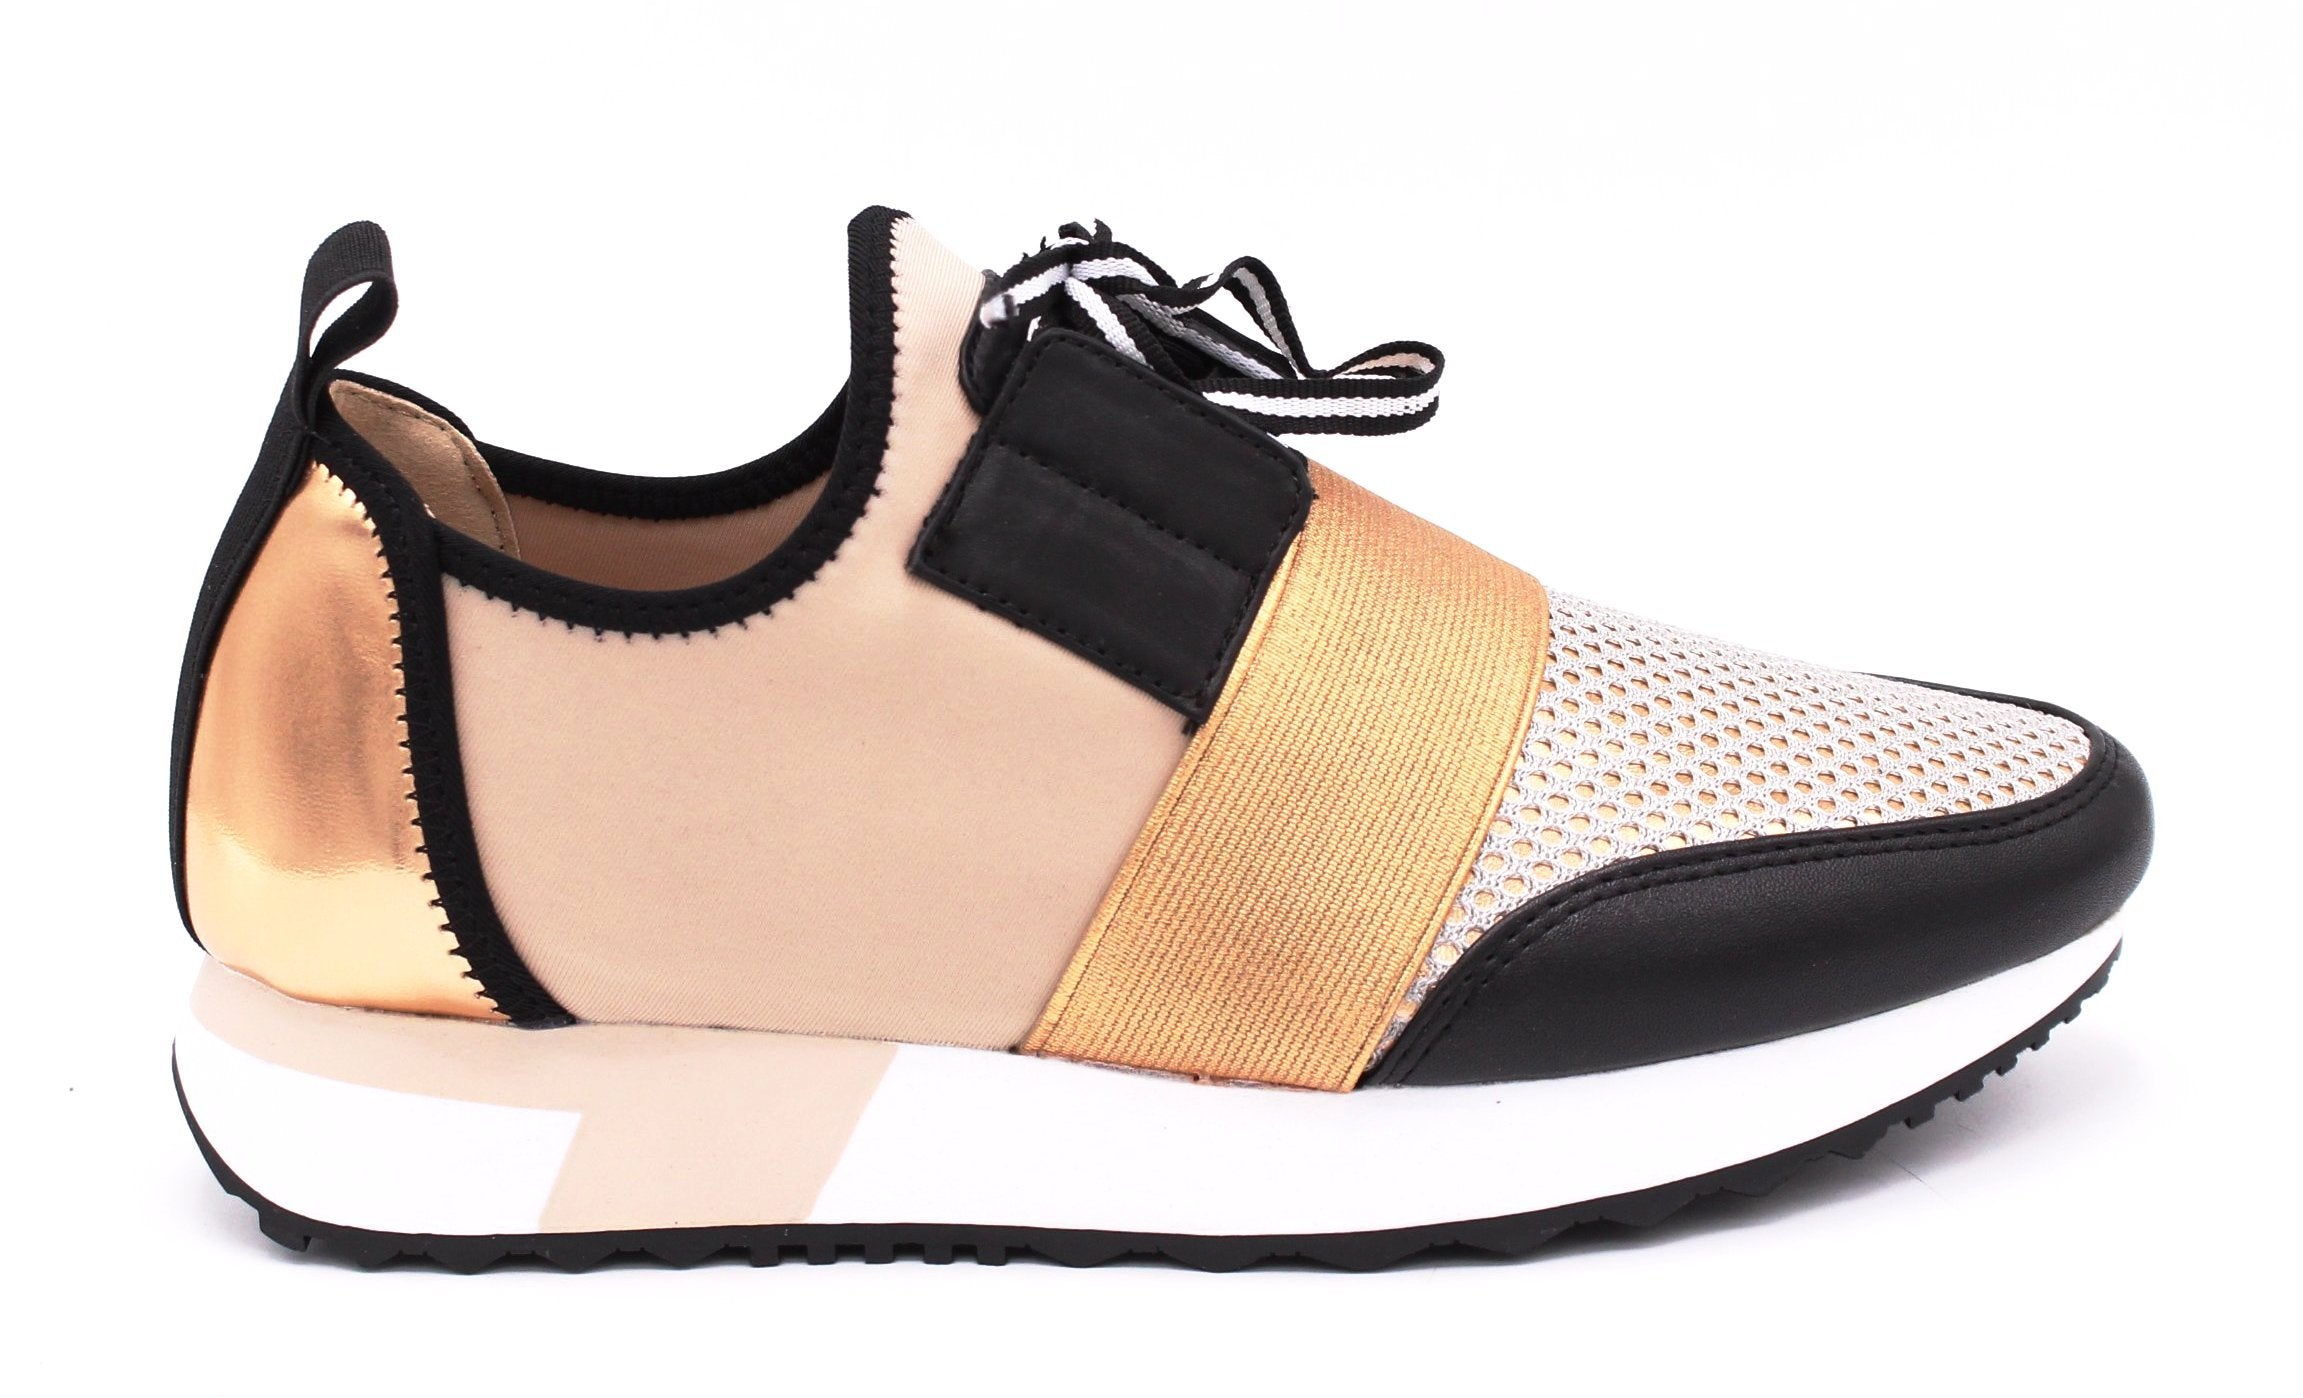 Steve Madden Gold Antics Trainer countdown package sale online cheap price store buy cheap fashionable clearance reliable lowest price cheap online Nol1N7znRQ